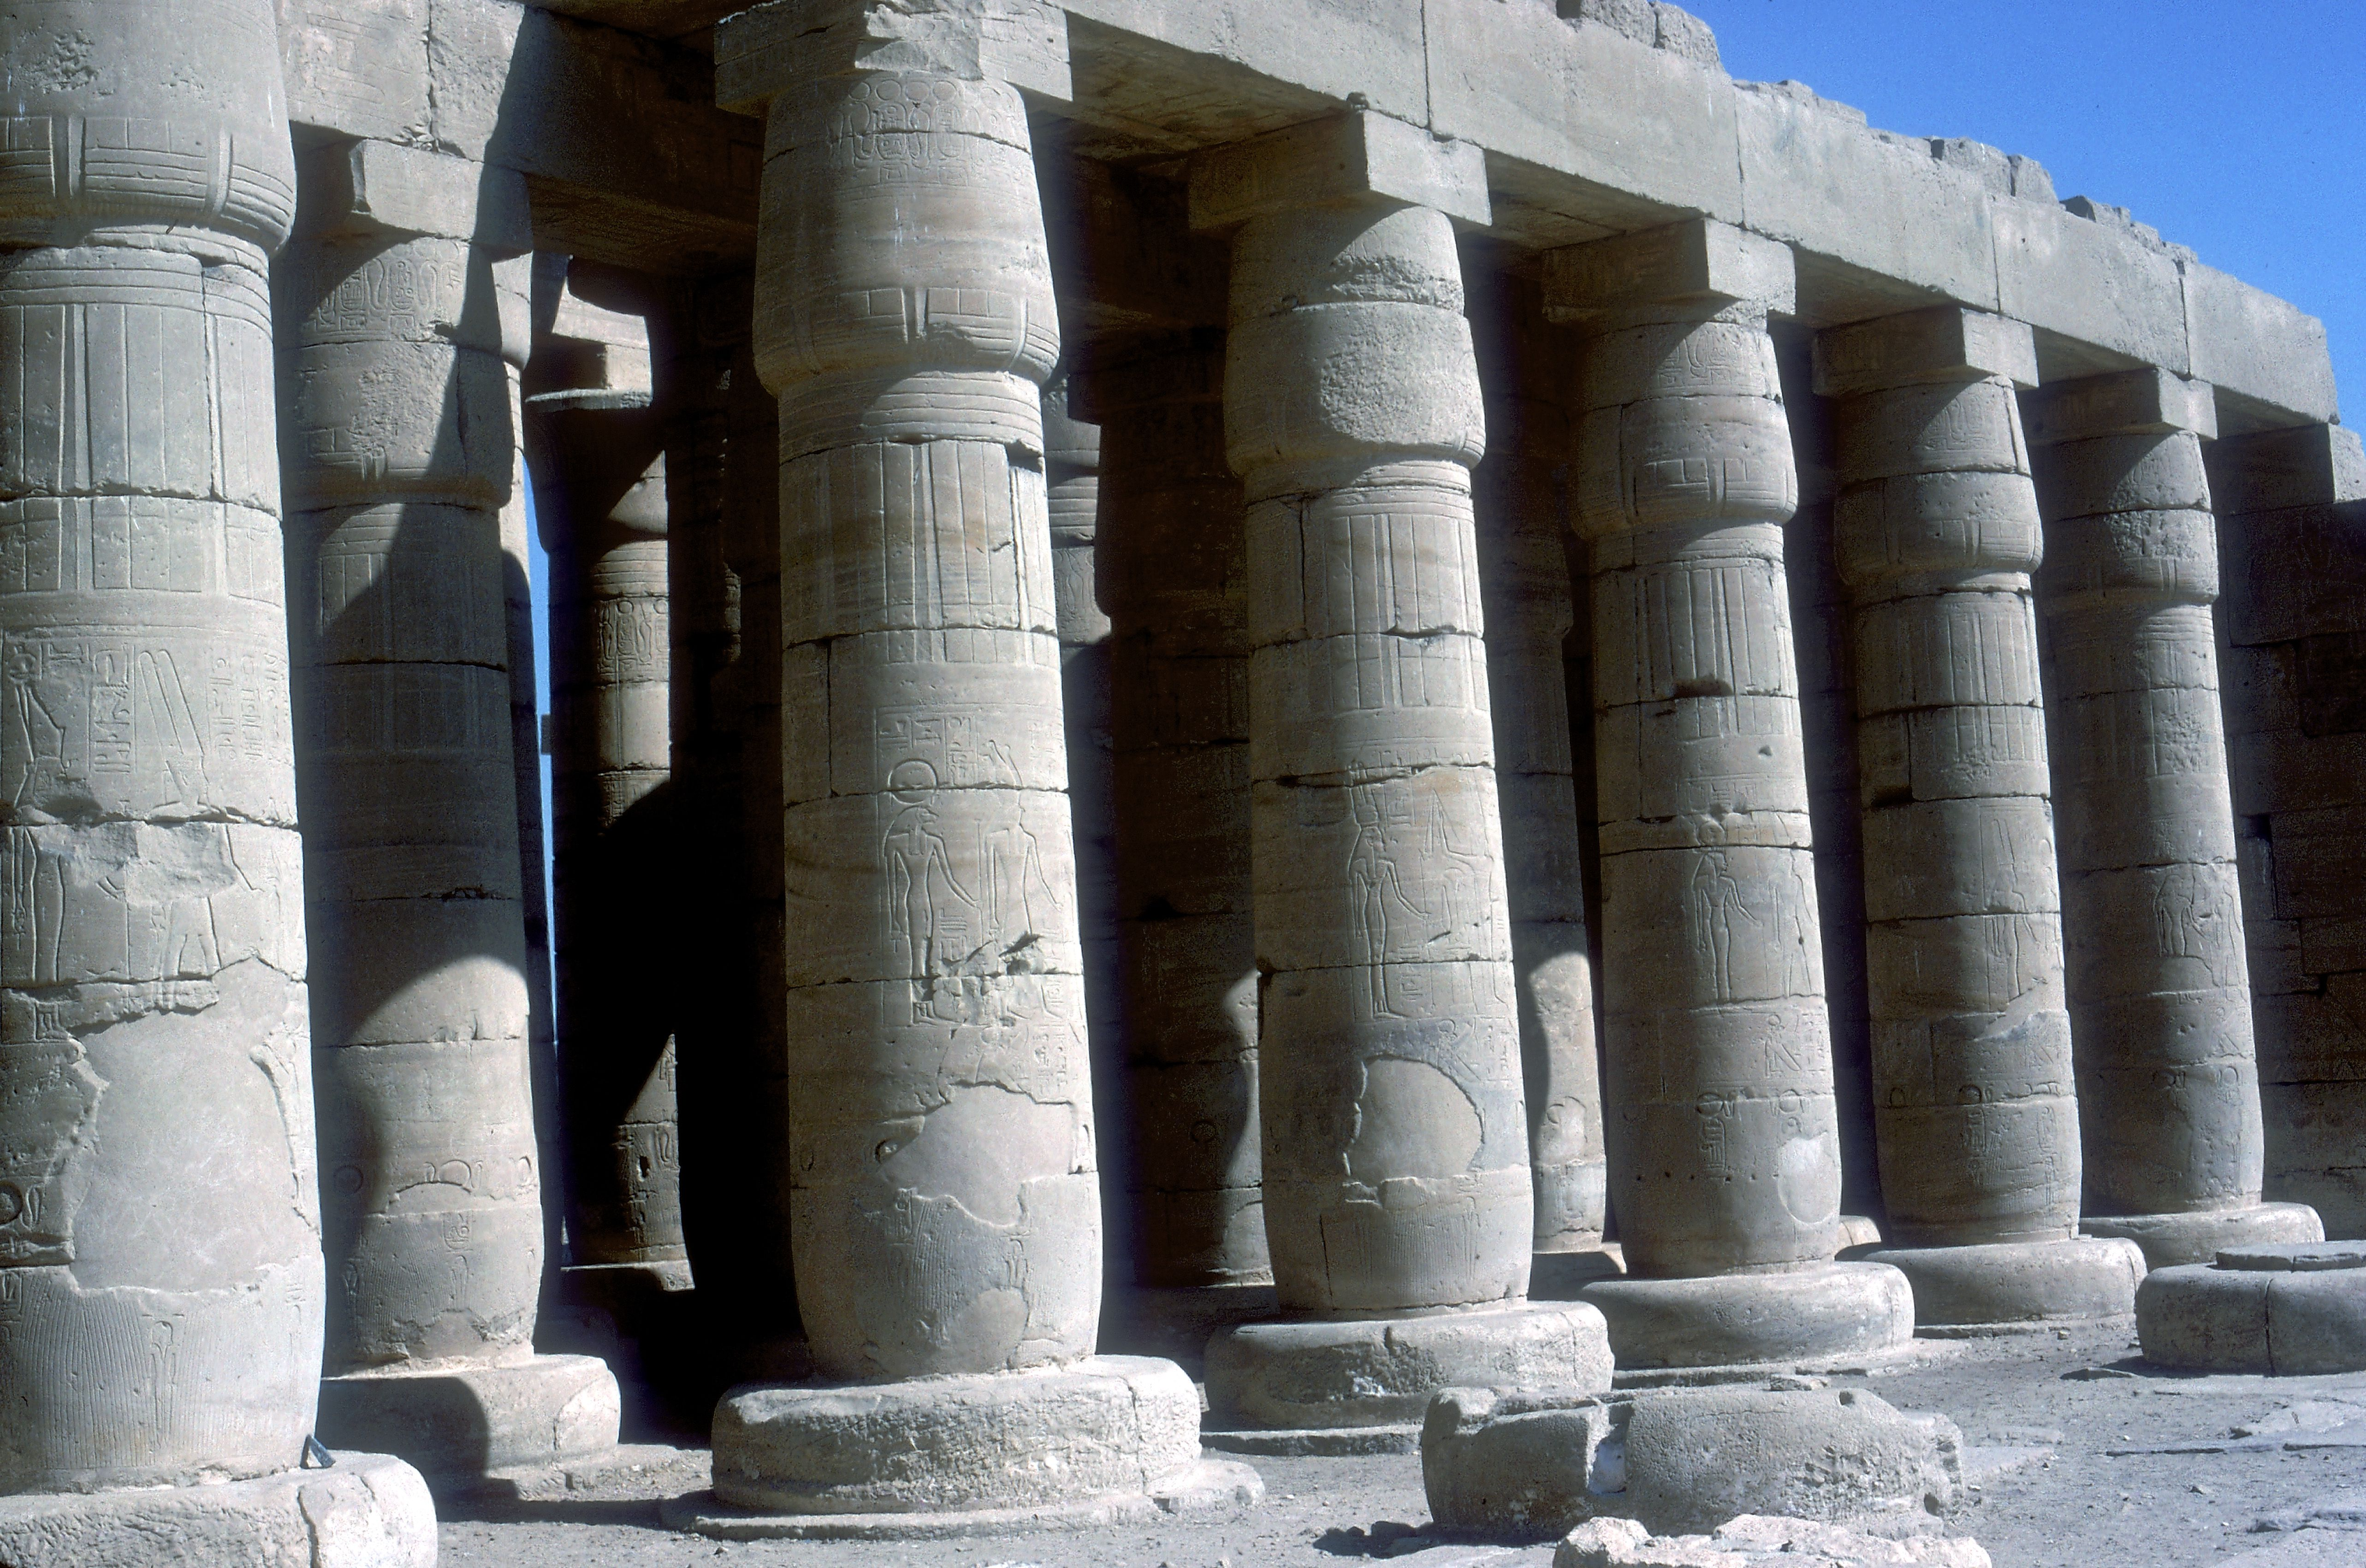 ancient, massive Egyptian columns, tapered, large tops and bottoms